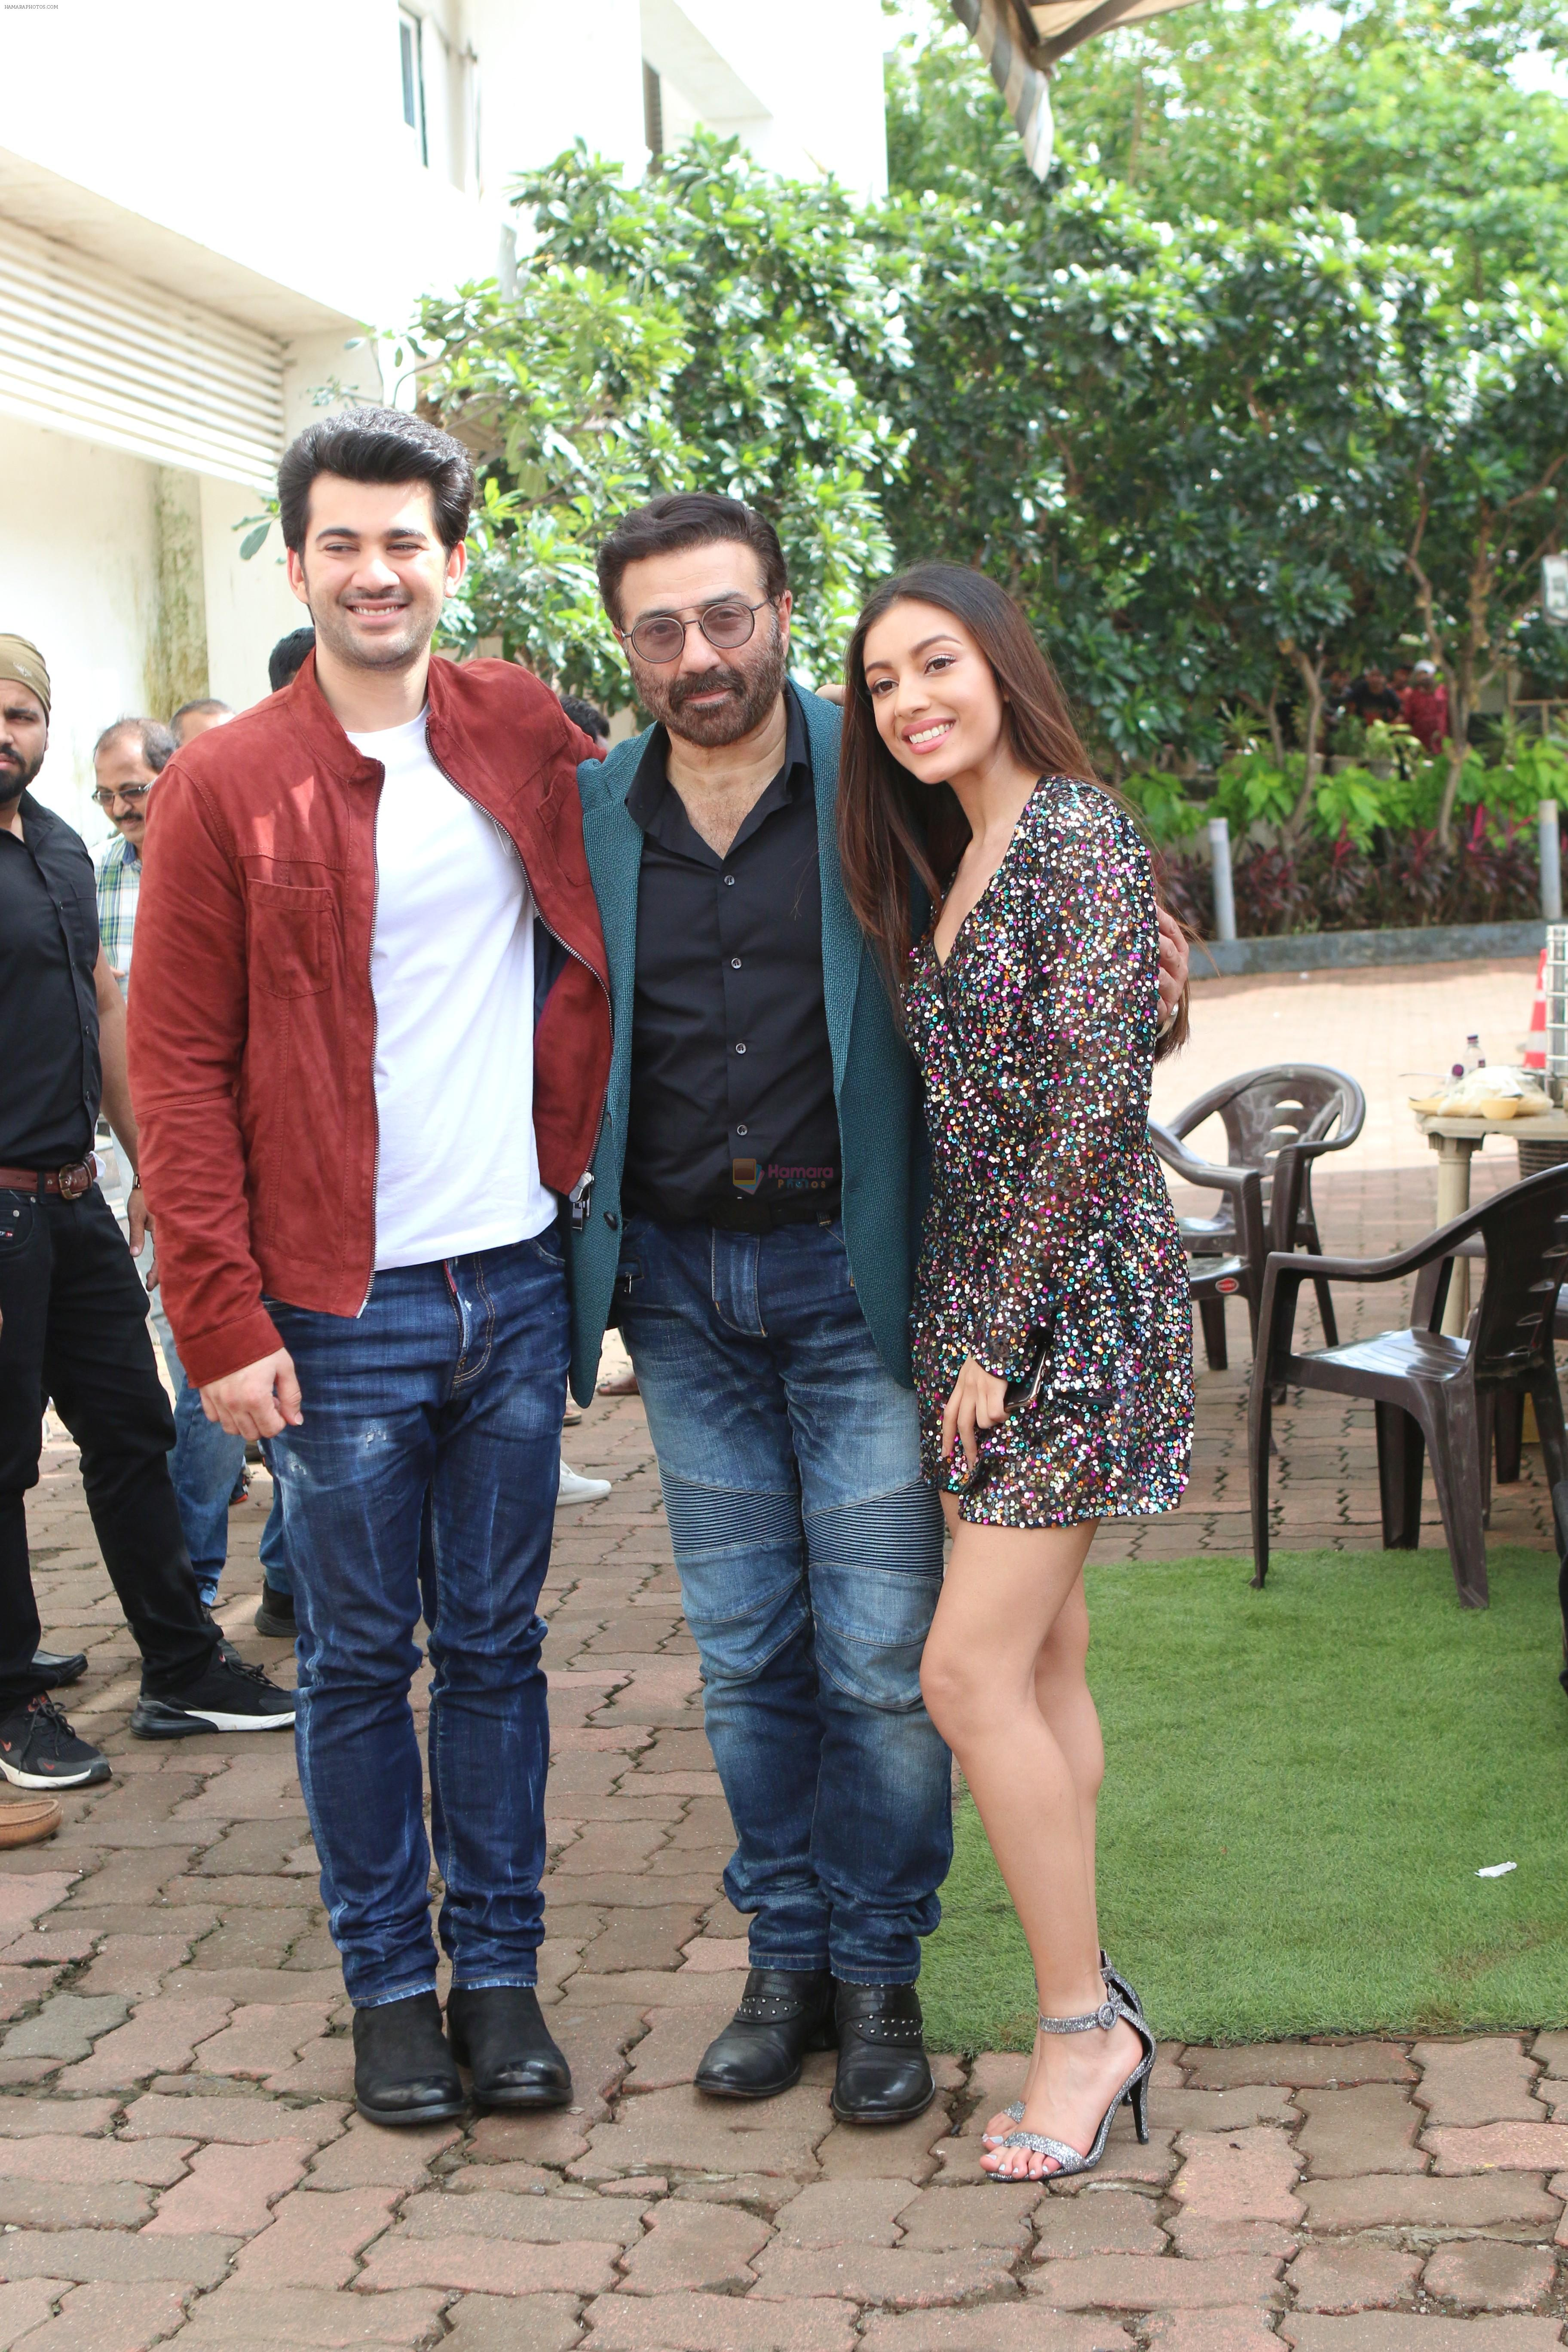 Sunny Deol, Karan Deol & Sehar Bhamba on the sets of Dance India Dance at filmcity in goregoan on 22nd Aug 2019